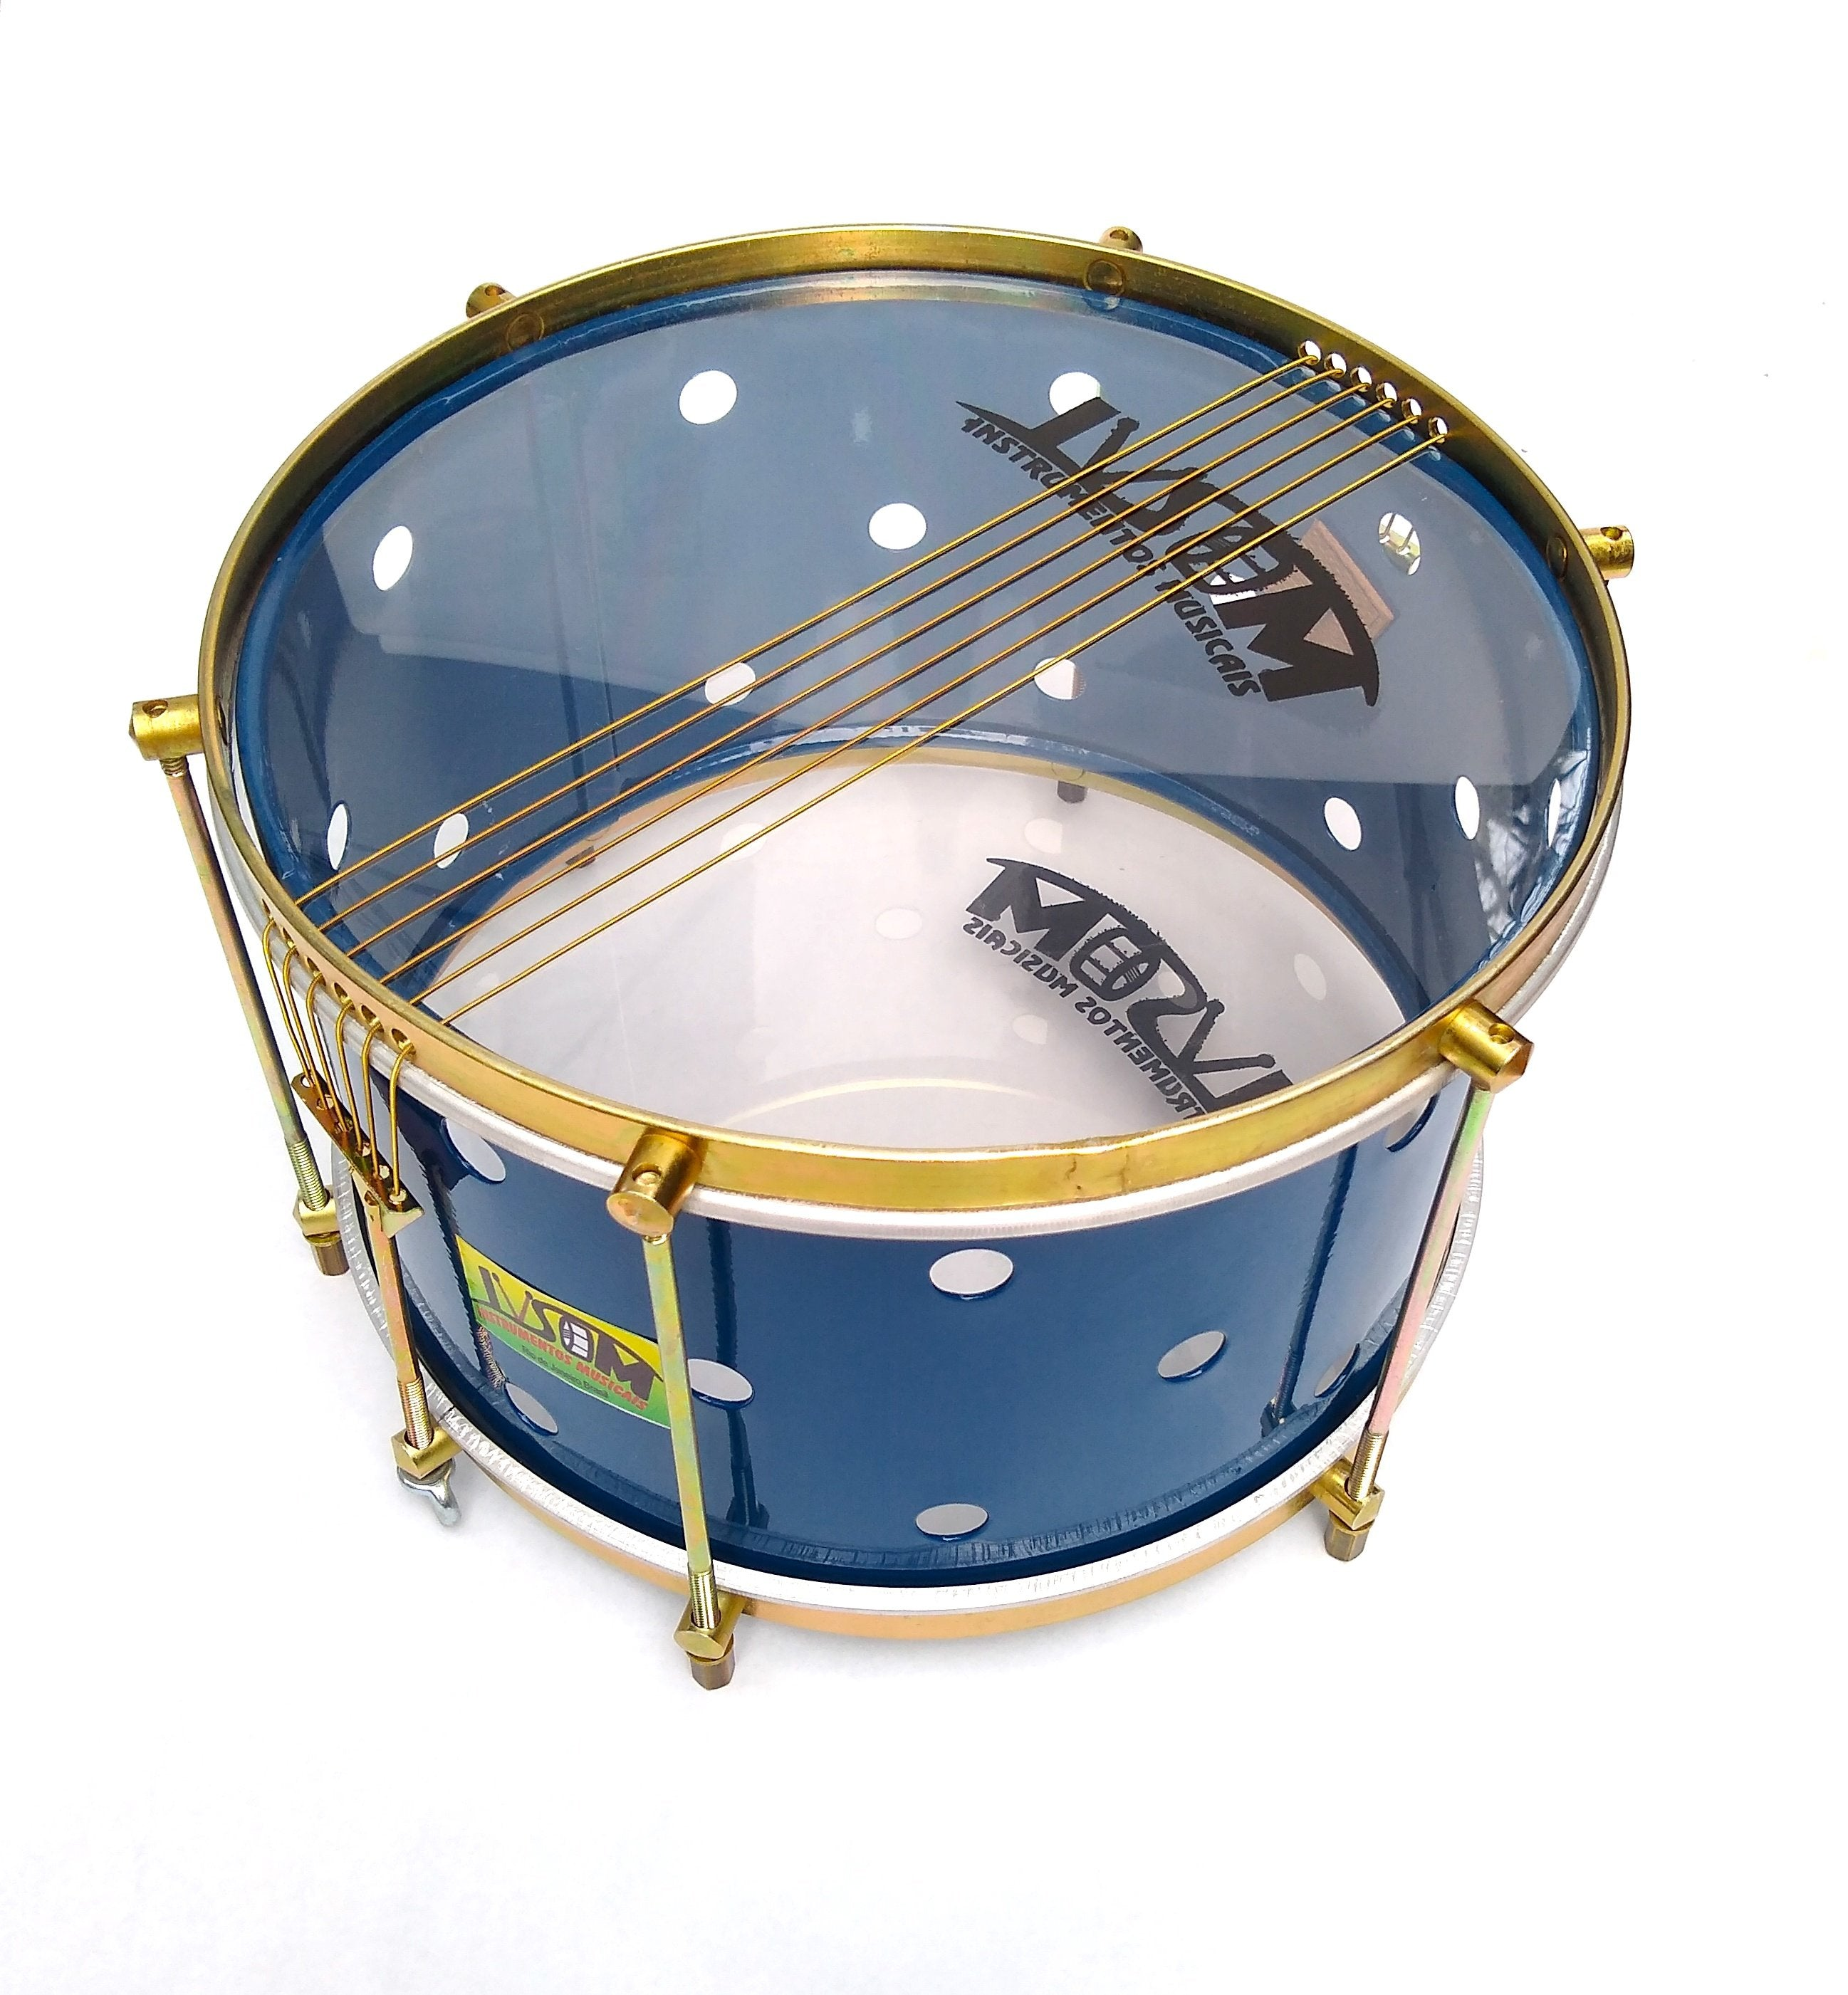 IVSOM snare drum with brass colored hardware, six strings, clear drum heads and a blue shell. The royal blue shell has small holes drilled into it.